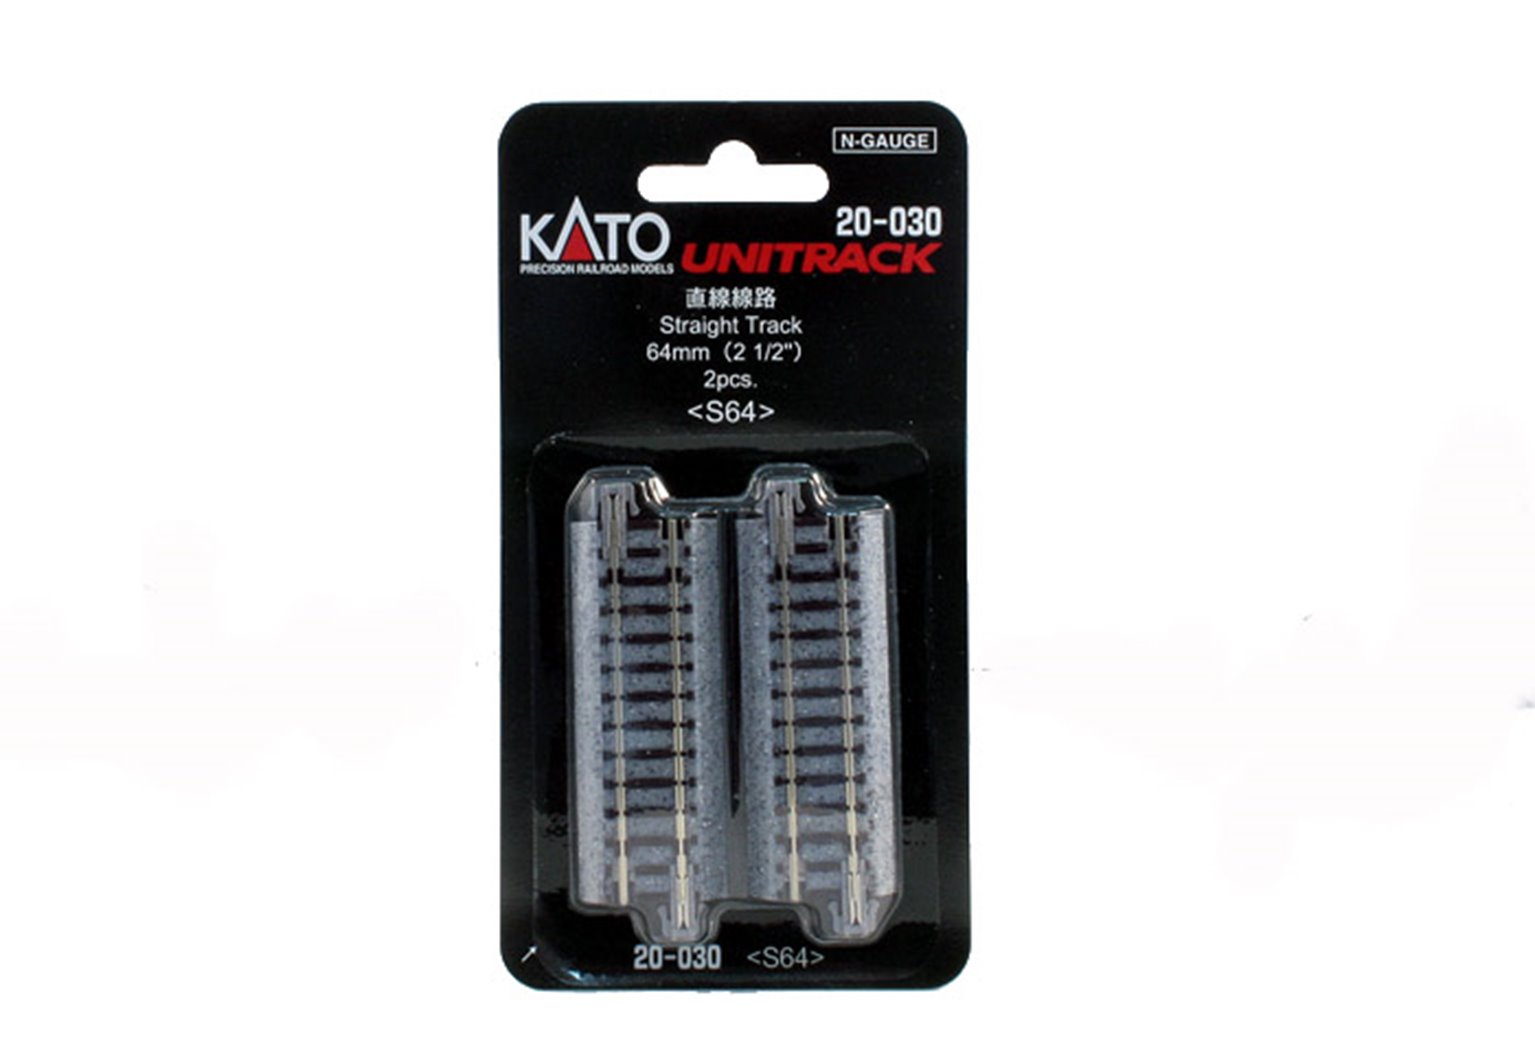 Kato 20-030 Ground Level 64mm Straight Track (2)